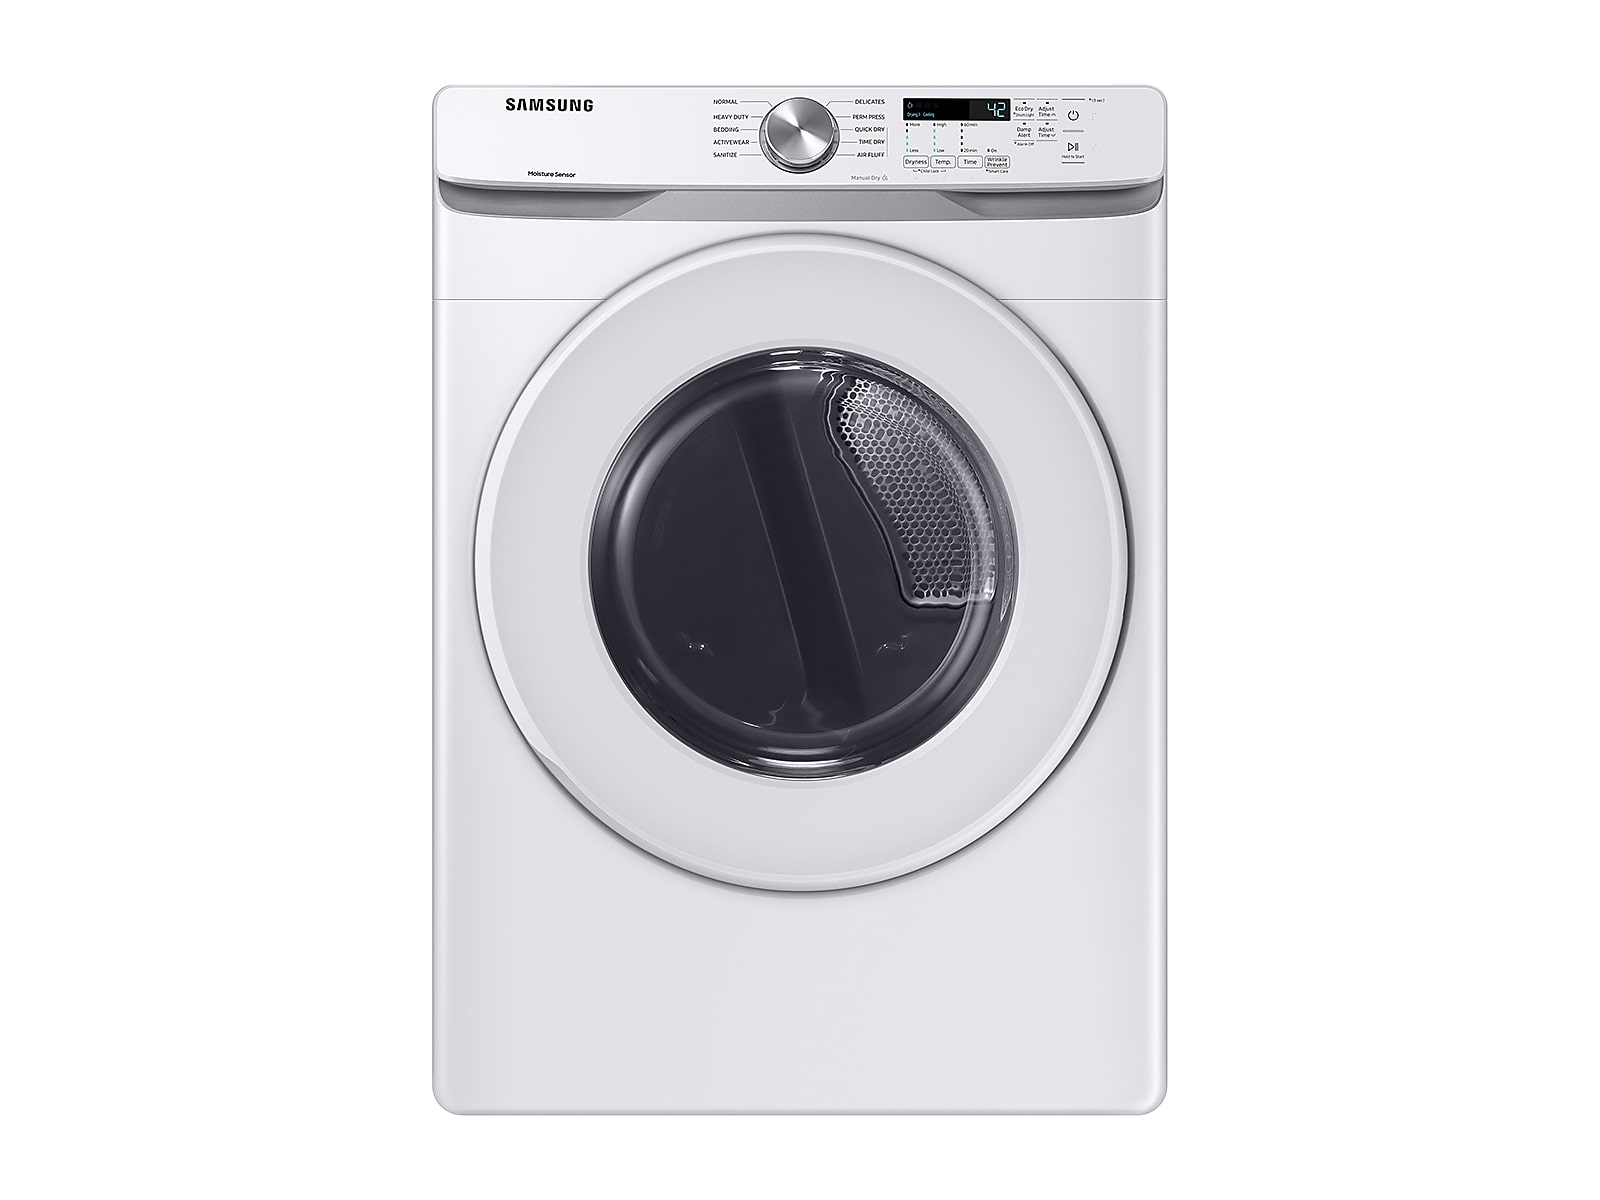 Samsung coupon: Samsung 7.5 cu. ft. Electric Dryer with Sensor Dry in White (DVE45T6000W/A3)